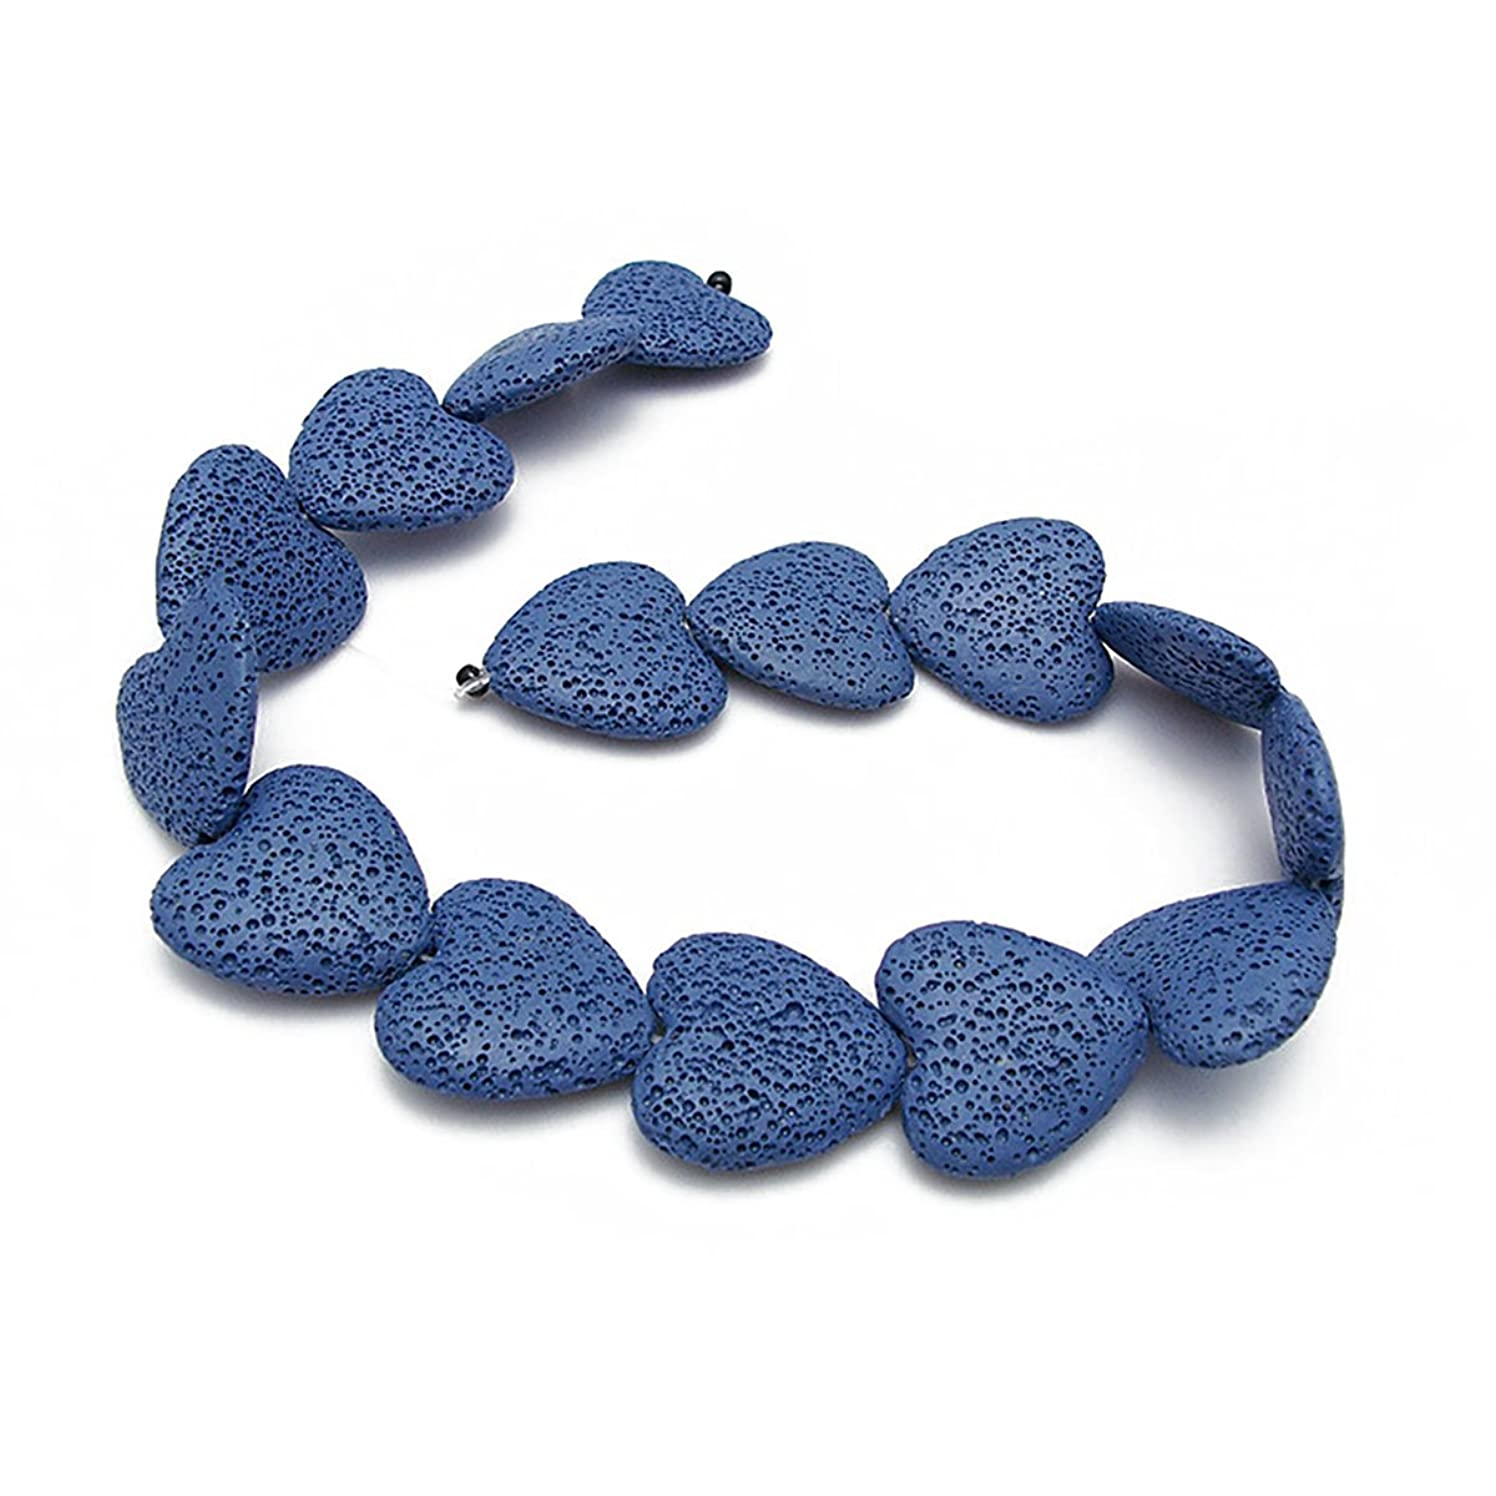 Heart-Shaped Colored Lava Stone Beads Loose Beads Rock Beads Volcanic Gemstone for Earrings Bracelet Necklace Jewelry Making (Deep Blue, Large)